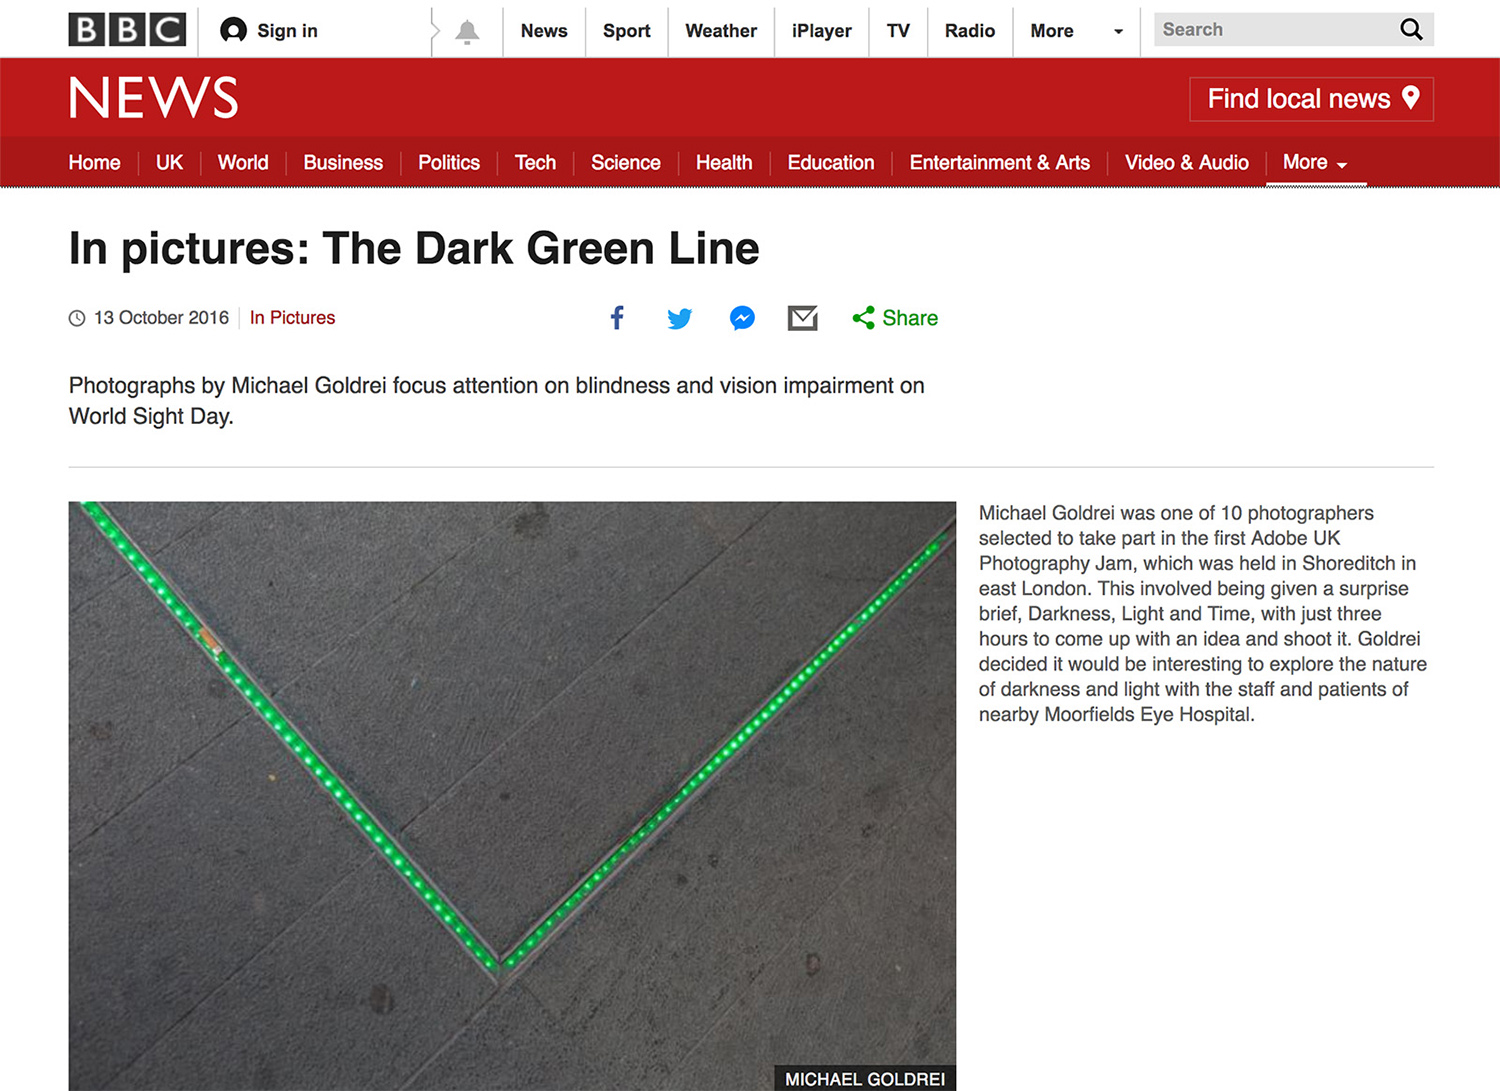 The BBC - In Oct 2016, the BBC featured my project 'The Dark Green Line' on World Site Day. This work came about when I competed in Adobe UK's first Photography Jam event, held in Shoreditch, London. This involved being given the surprise brief of 'Darkness, Light and Time', followed by three hours to come up with an idea and shoot it. I decided that Moorfields Eye Hospital would be a good subject for this, and started my journey at Old Street tube station, following the dark green painted line along the pavement which leads patients from there to the hospital. I photographed and interviewed patients and staff along the way about their experiences of darkness and light.I was one of the two finalists at the Adobe event. You can view my full project here, and the BBC version in an edited format here.